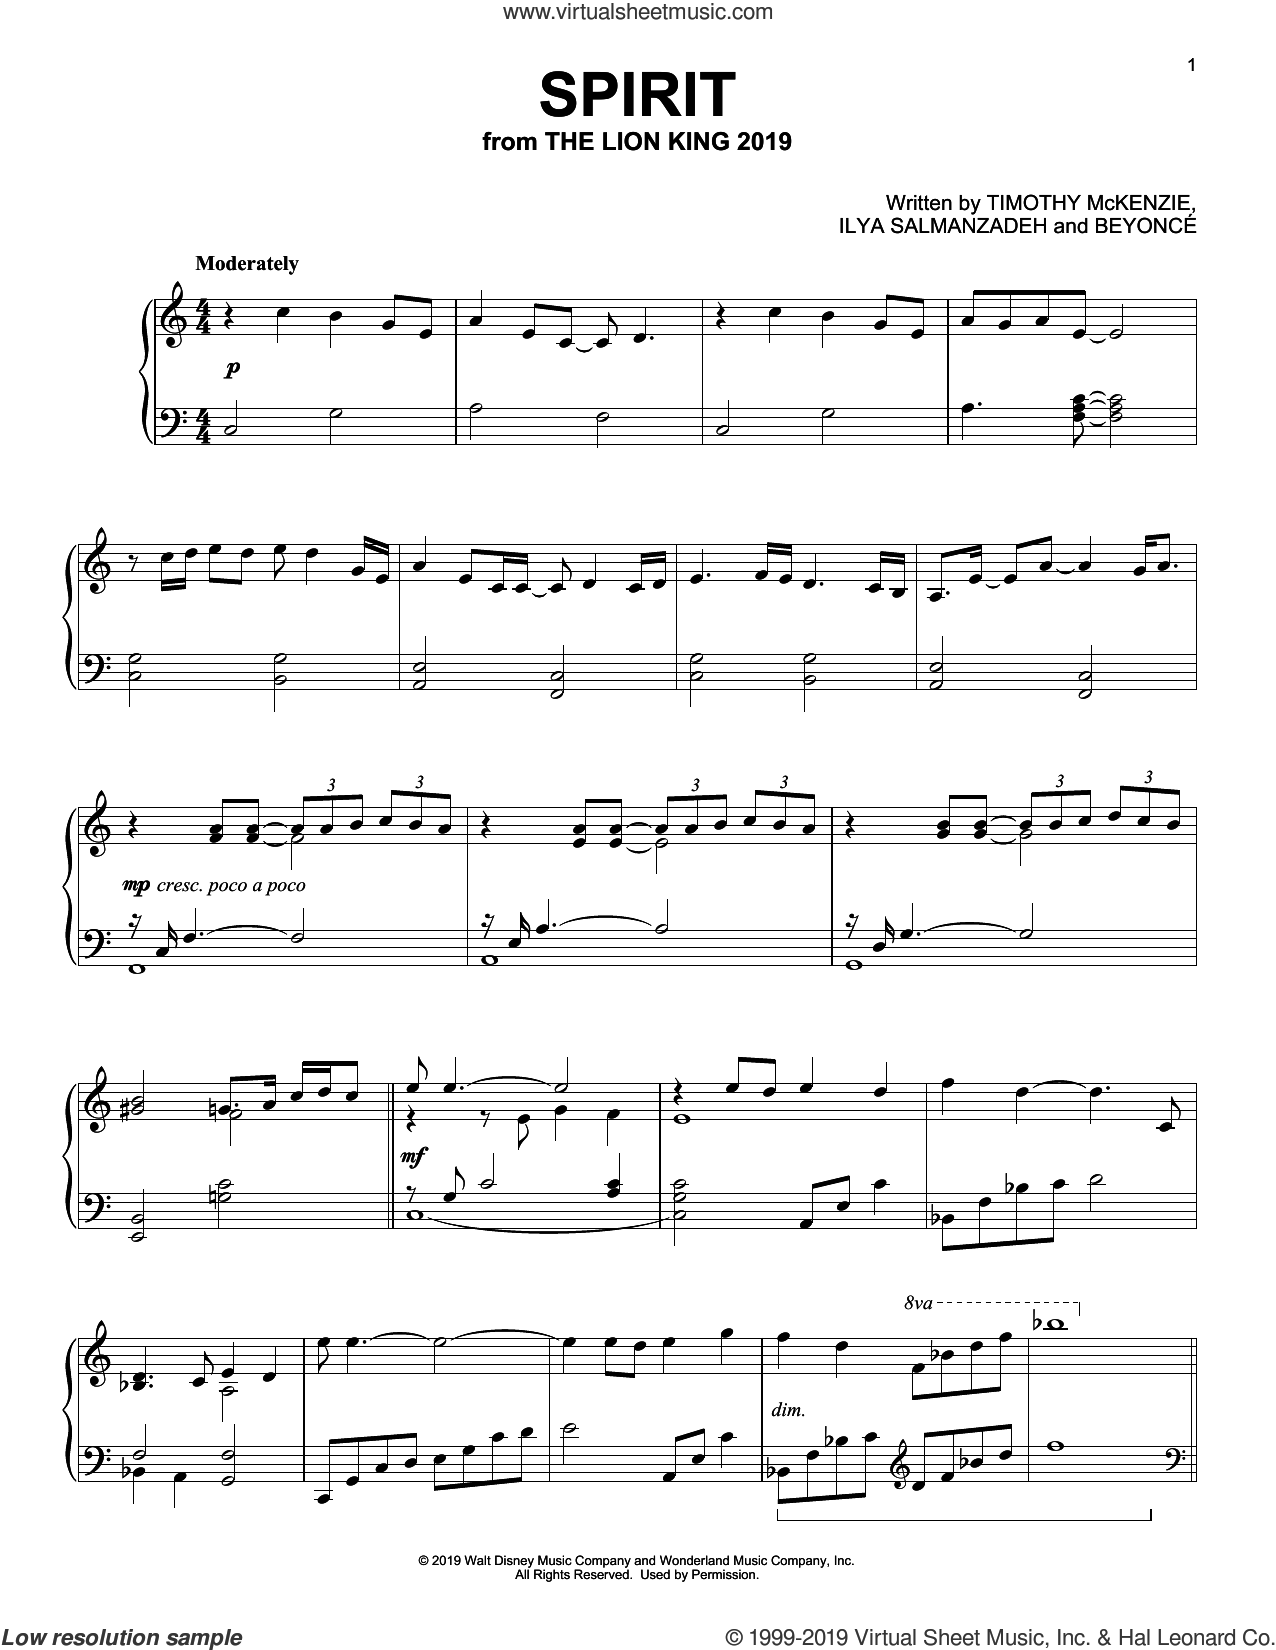 Spirit (from The Lion King 2019) sheet music for piano solo by Beyonce, Ilya Salmanzadeh and Timothy McKenzie, intermediate skill level